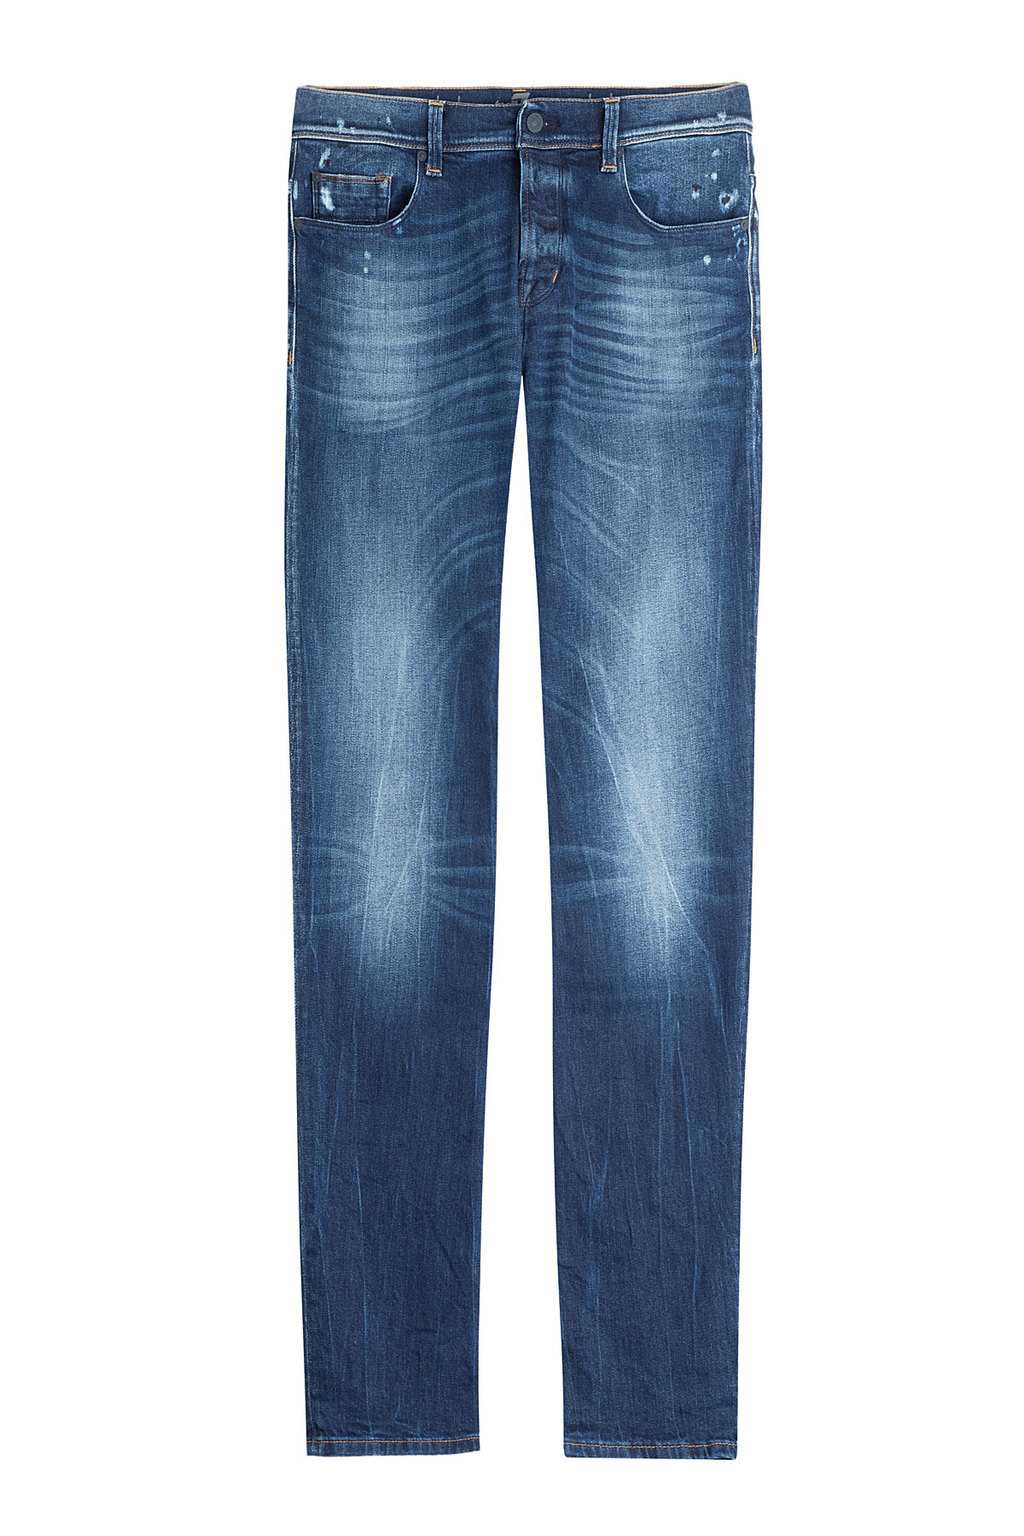 Straight Leg Jeans - style: straight leg; length: standard; pattern: plain; waist: low rise; pocket detail: traditional 5 pocket; secondary colour: navy; predominant colour: denim; occasions: casual; fibres: cotton - stretch; jeans detail: whiskering, washed/faded; texture group: denim; pattern type: fabric; pattern size: standard (bottom); season: a/w 2015; wardrobe: basic